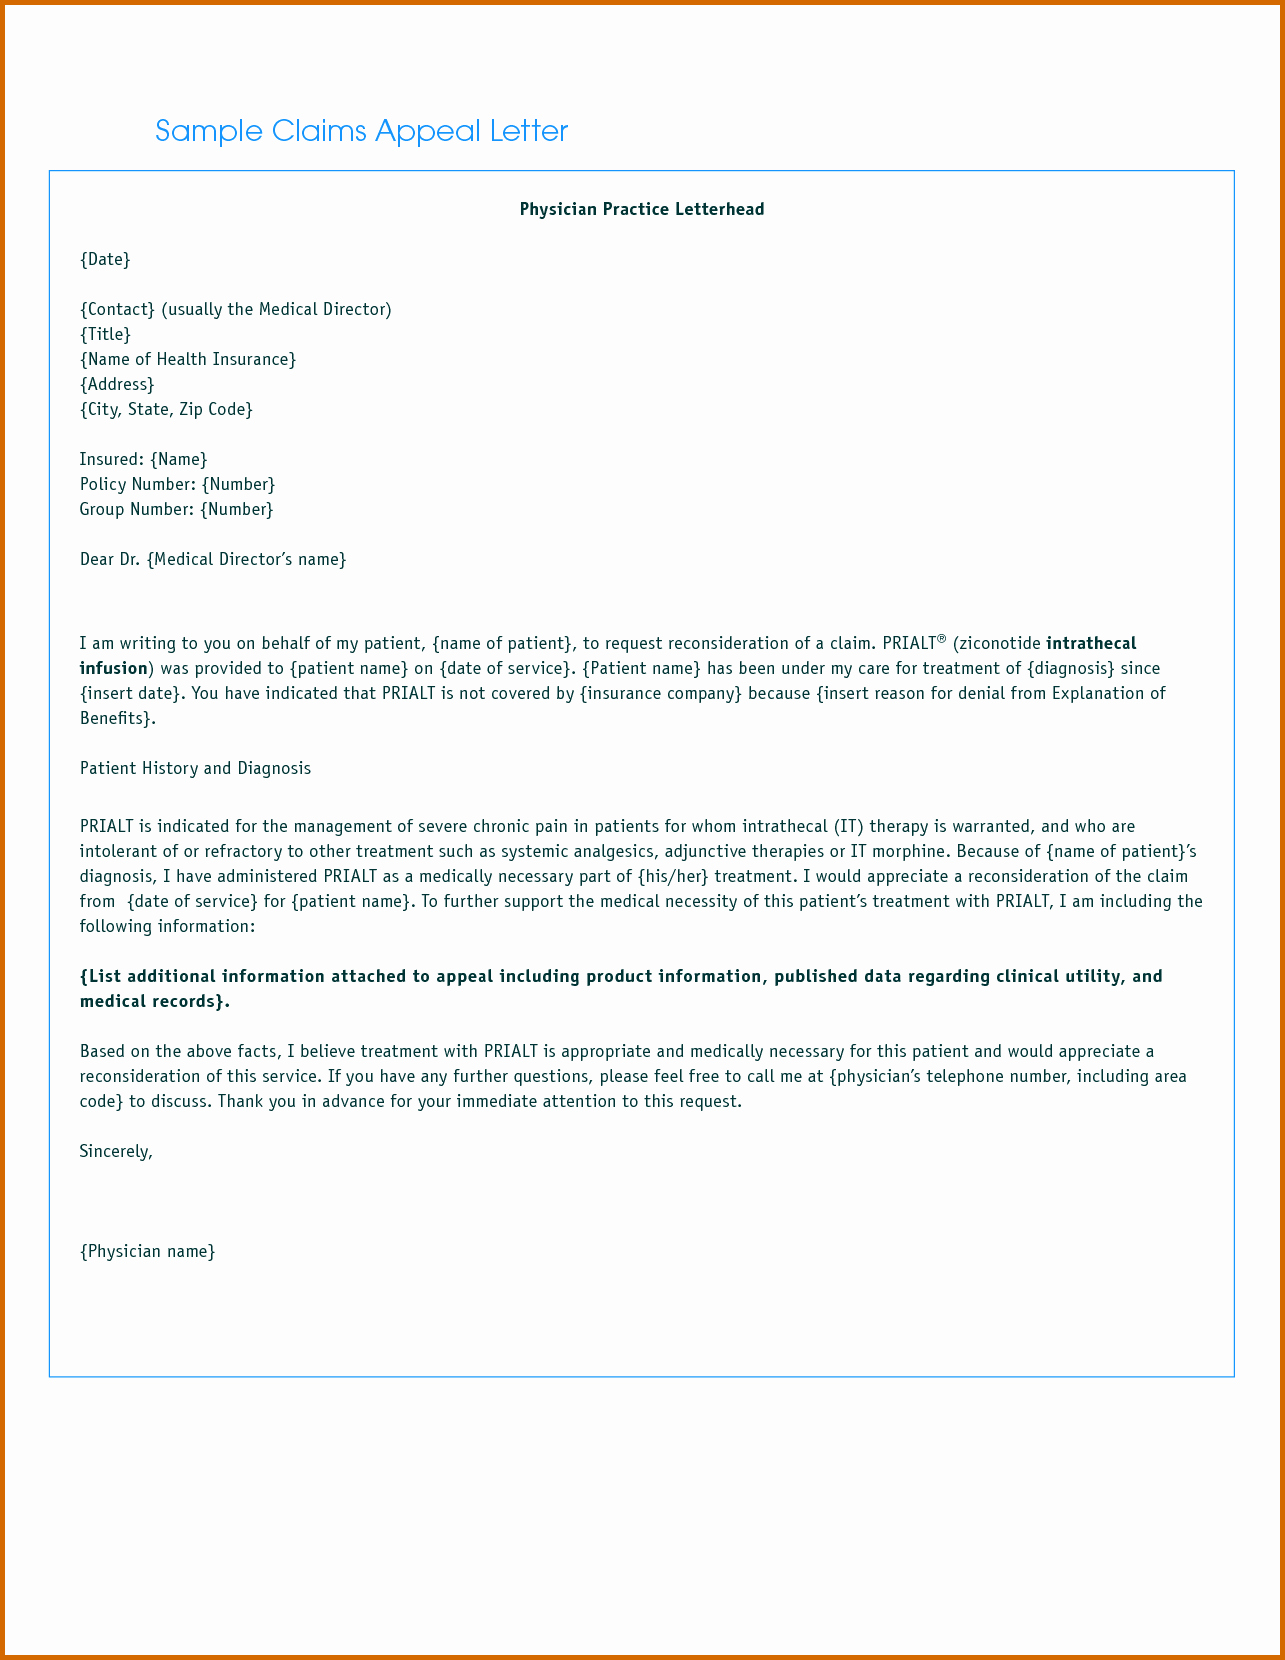 Claim Denial Letter Sample Airline Lovely 13 Appeal Letter for Insurance Claim Denial